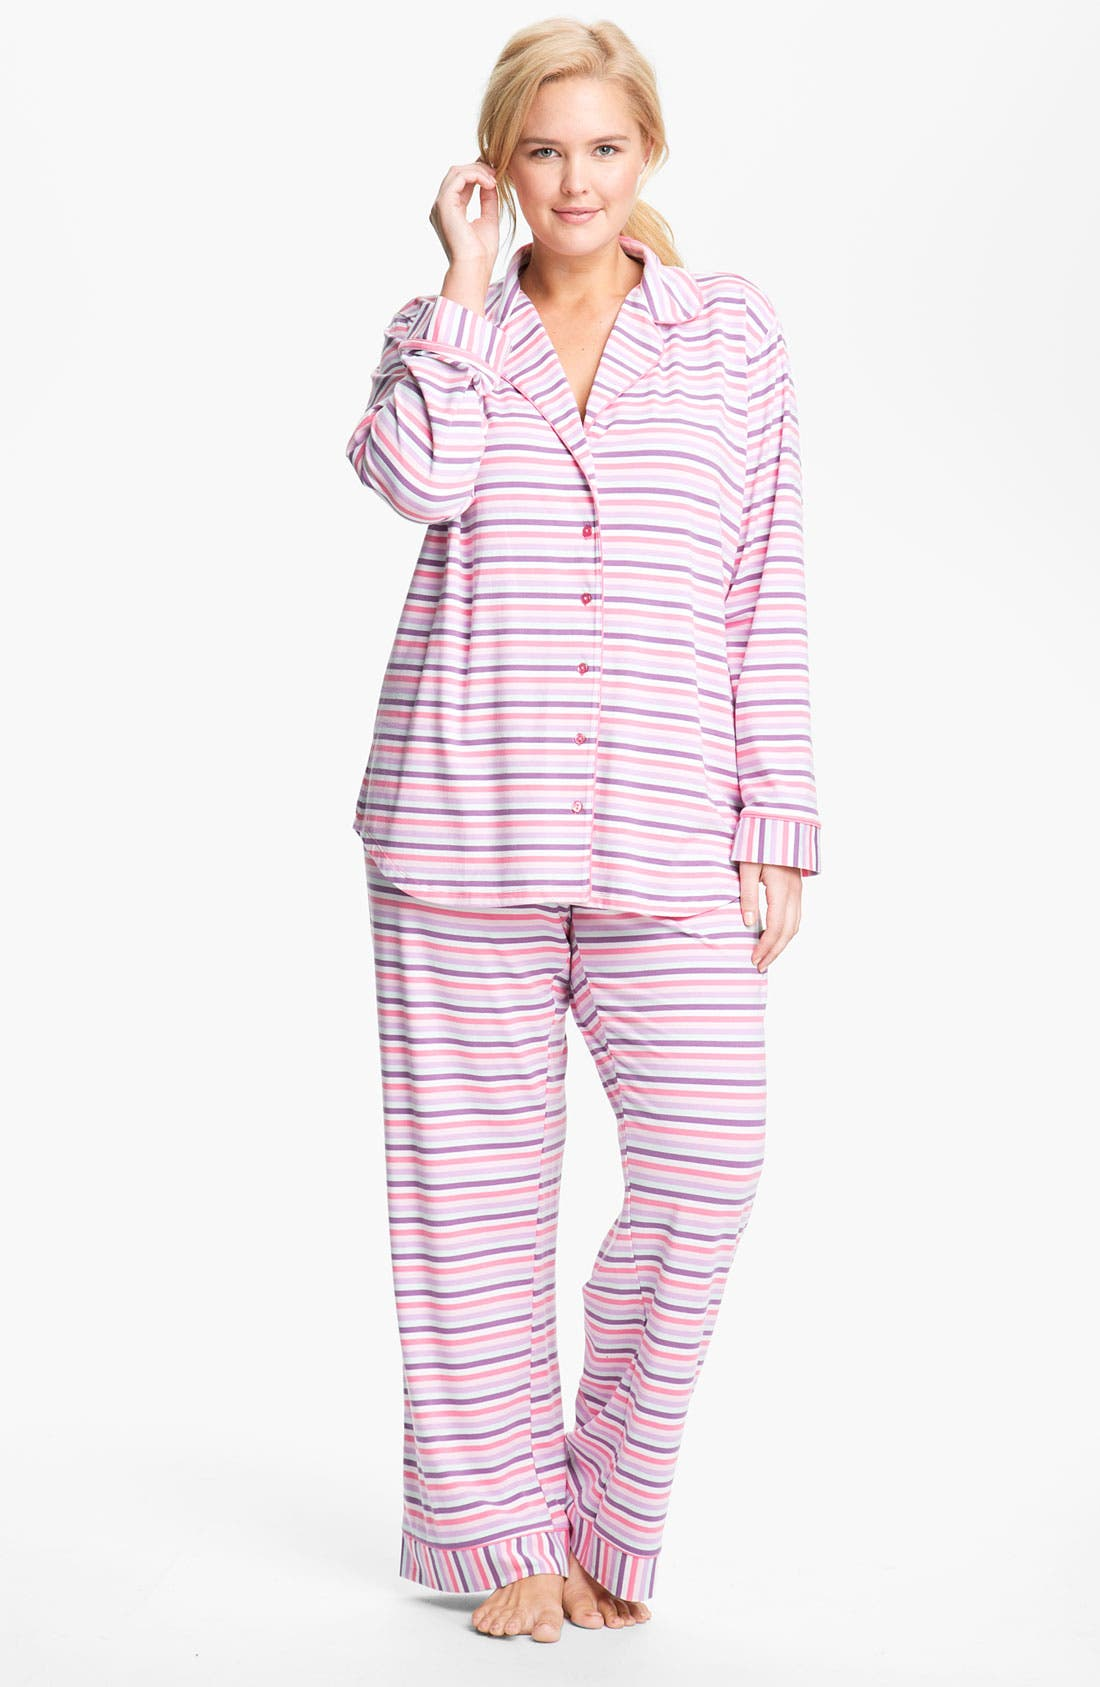 Alternate Image 1 Selected - Nordstrom Knit Pajamas (Plus)